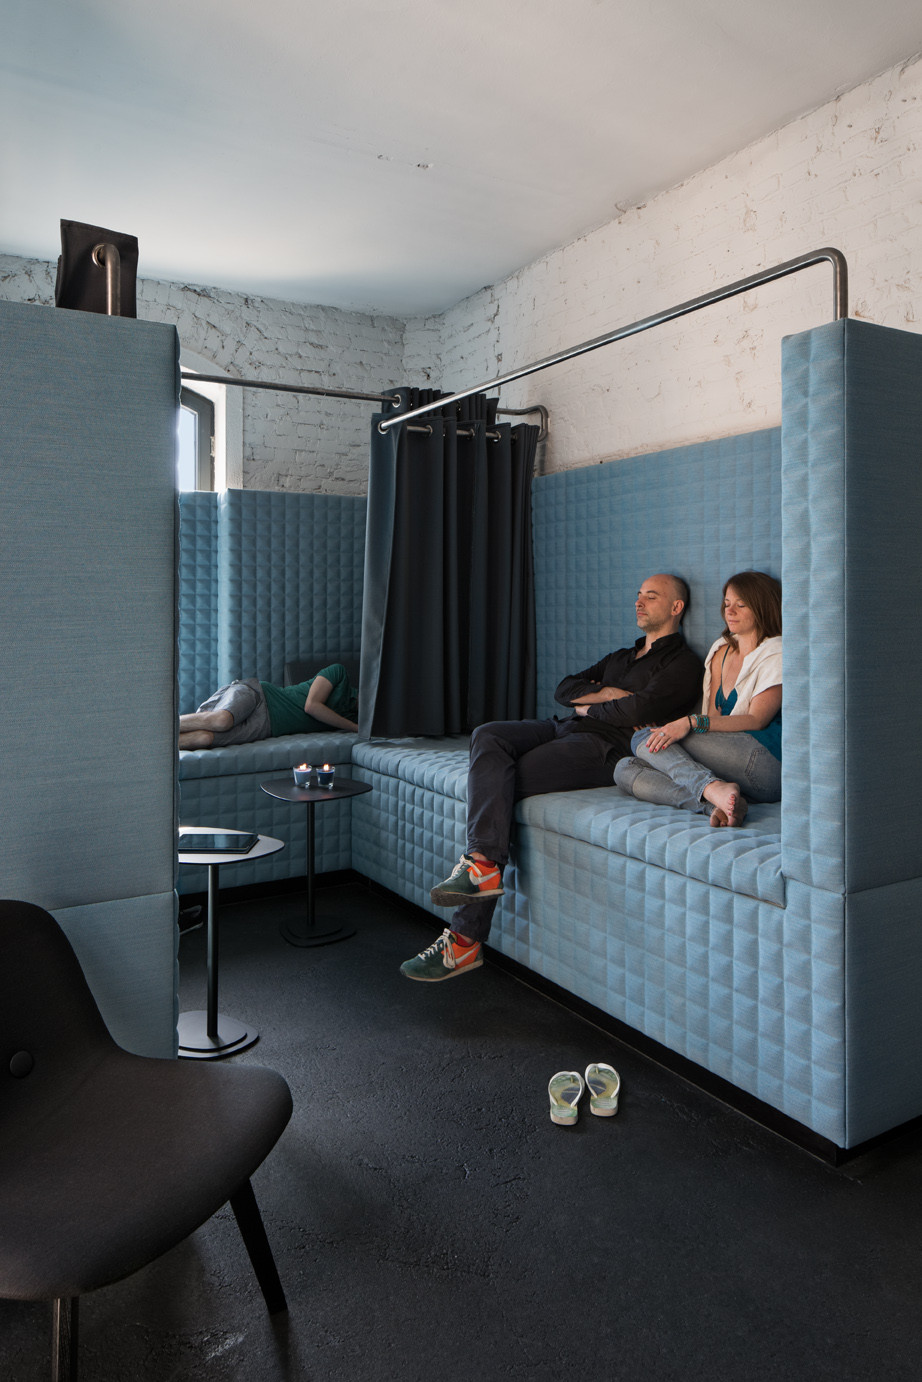 gallery of new soundcloud headquarters kinzo berlin 21. Black Bedroom Furniture Sets. Home Design Ideas